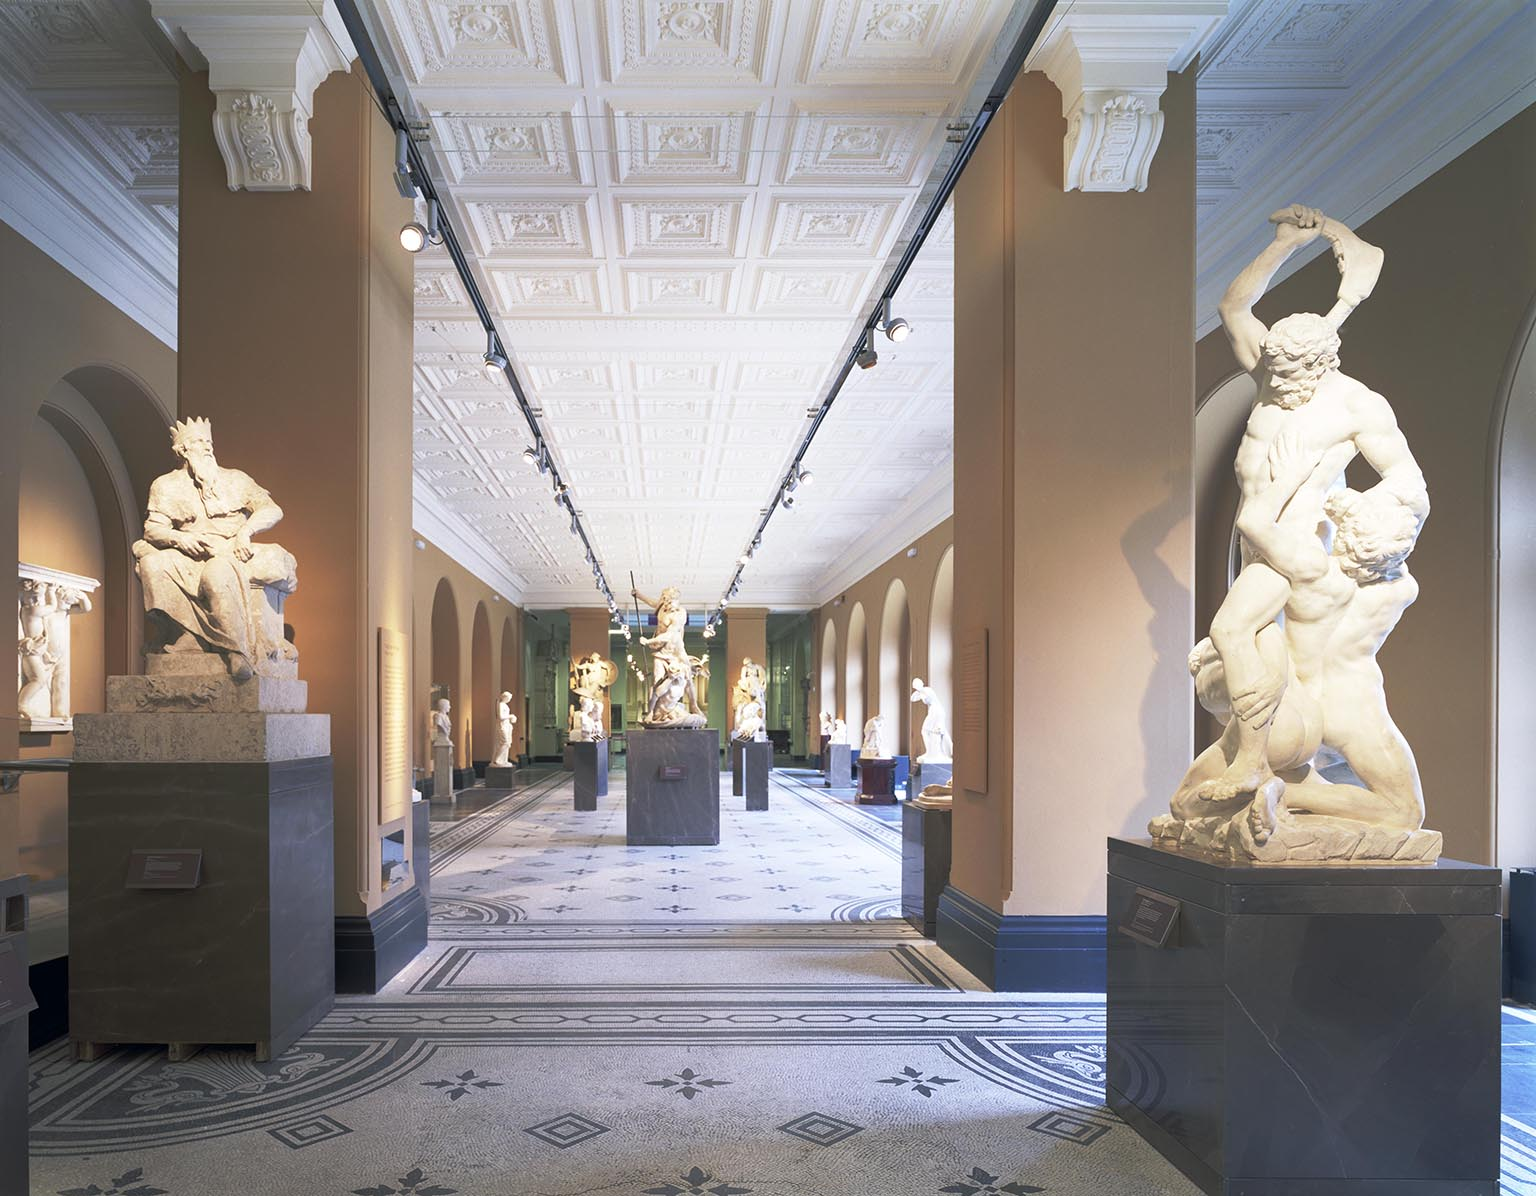 1. Victoria and Albert Museum, London, 50% off exhibitions with National Art Pass - Richard Waite